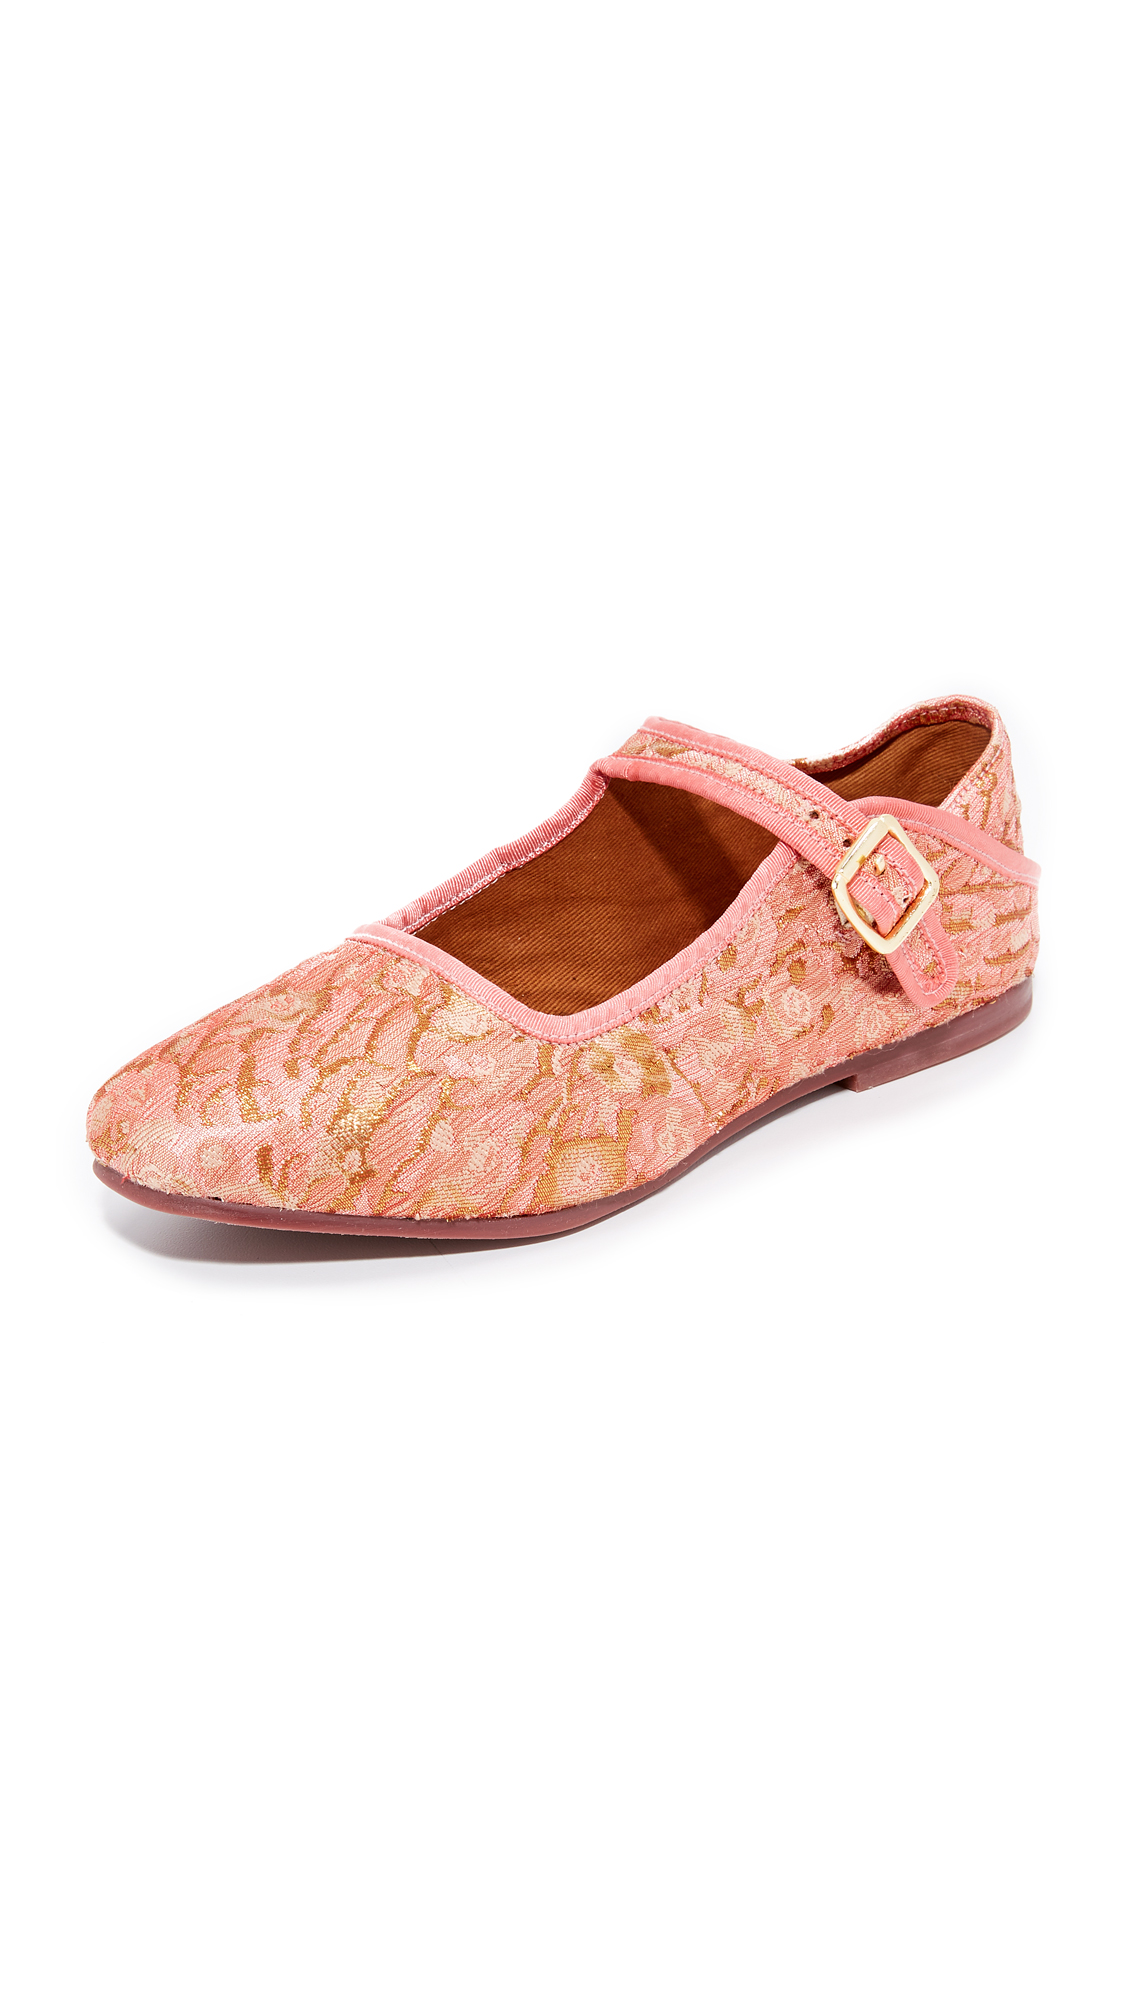 Free People Evie Mary Jane Convertible Flats - Pink